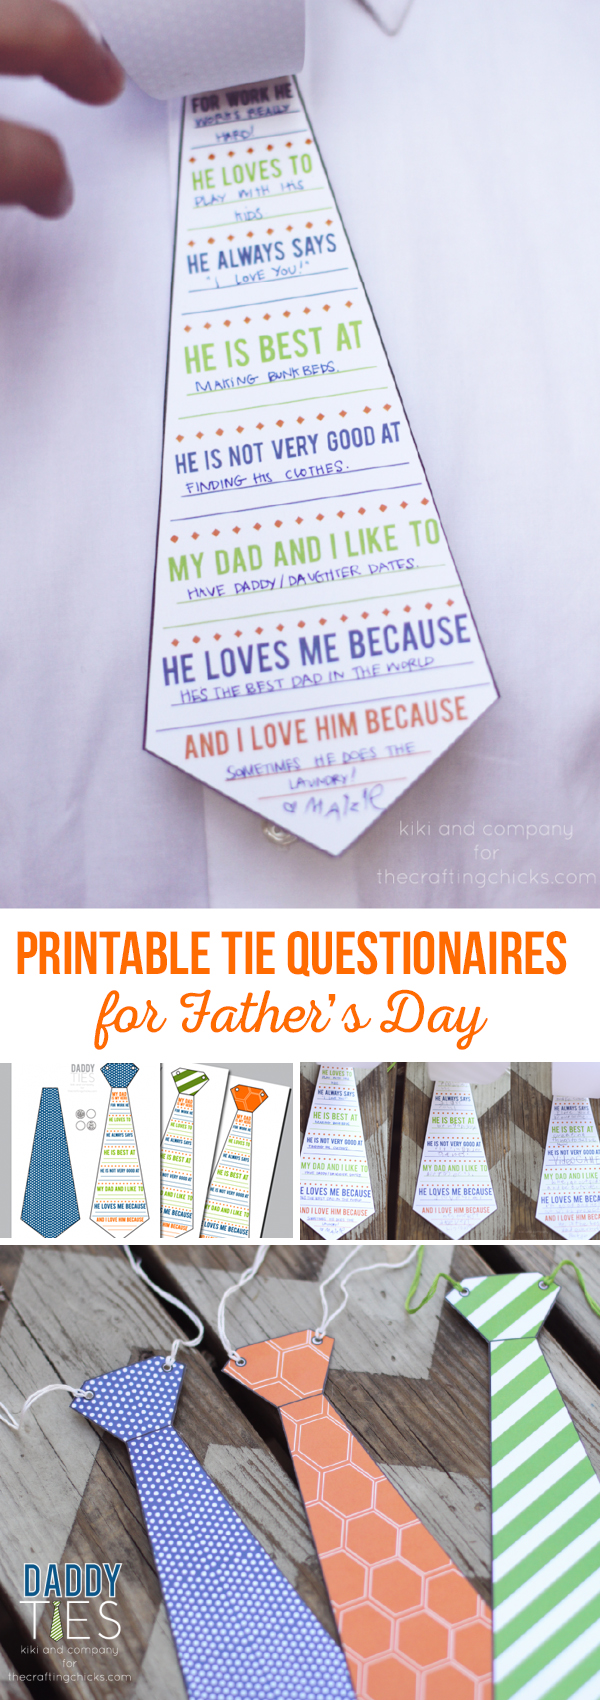 Printable Tie Questionaires for Father's Day